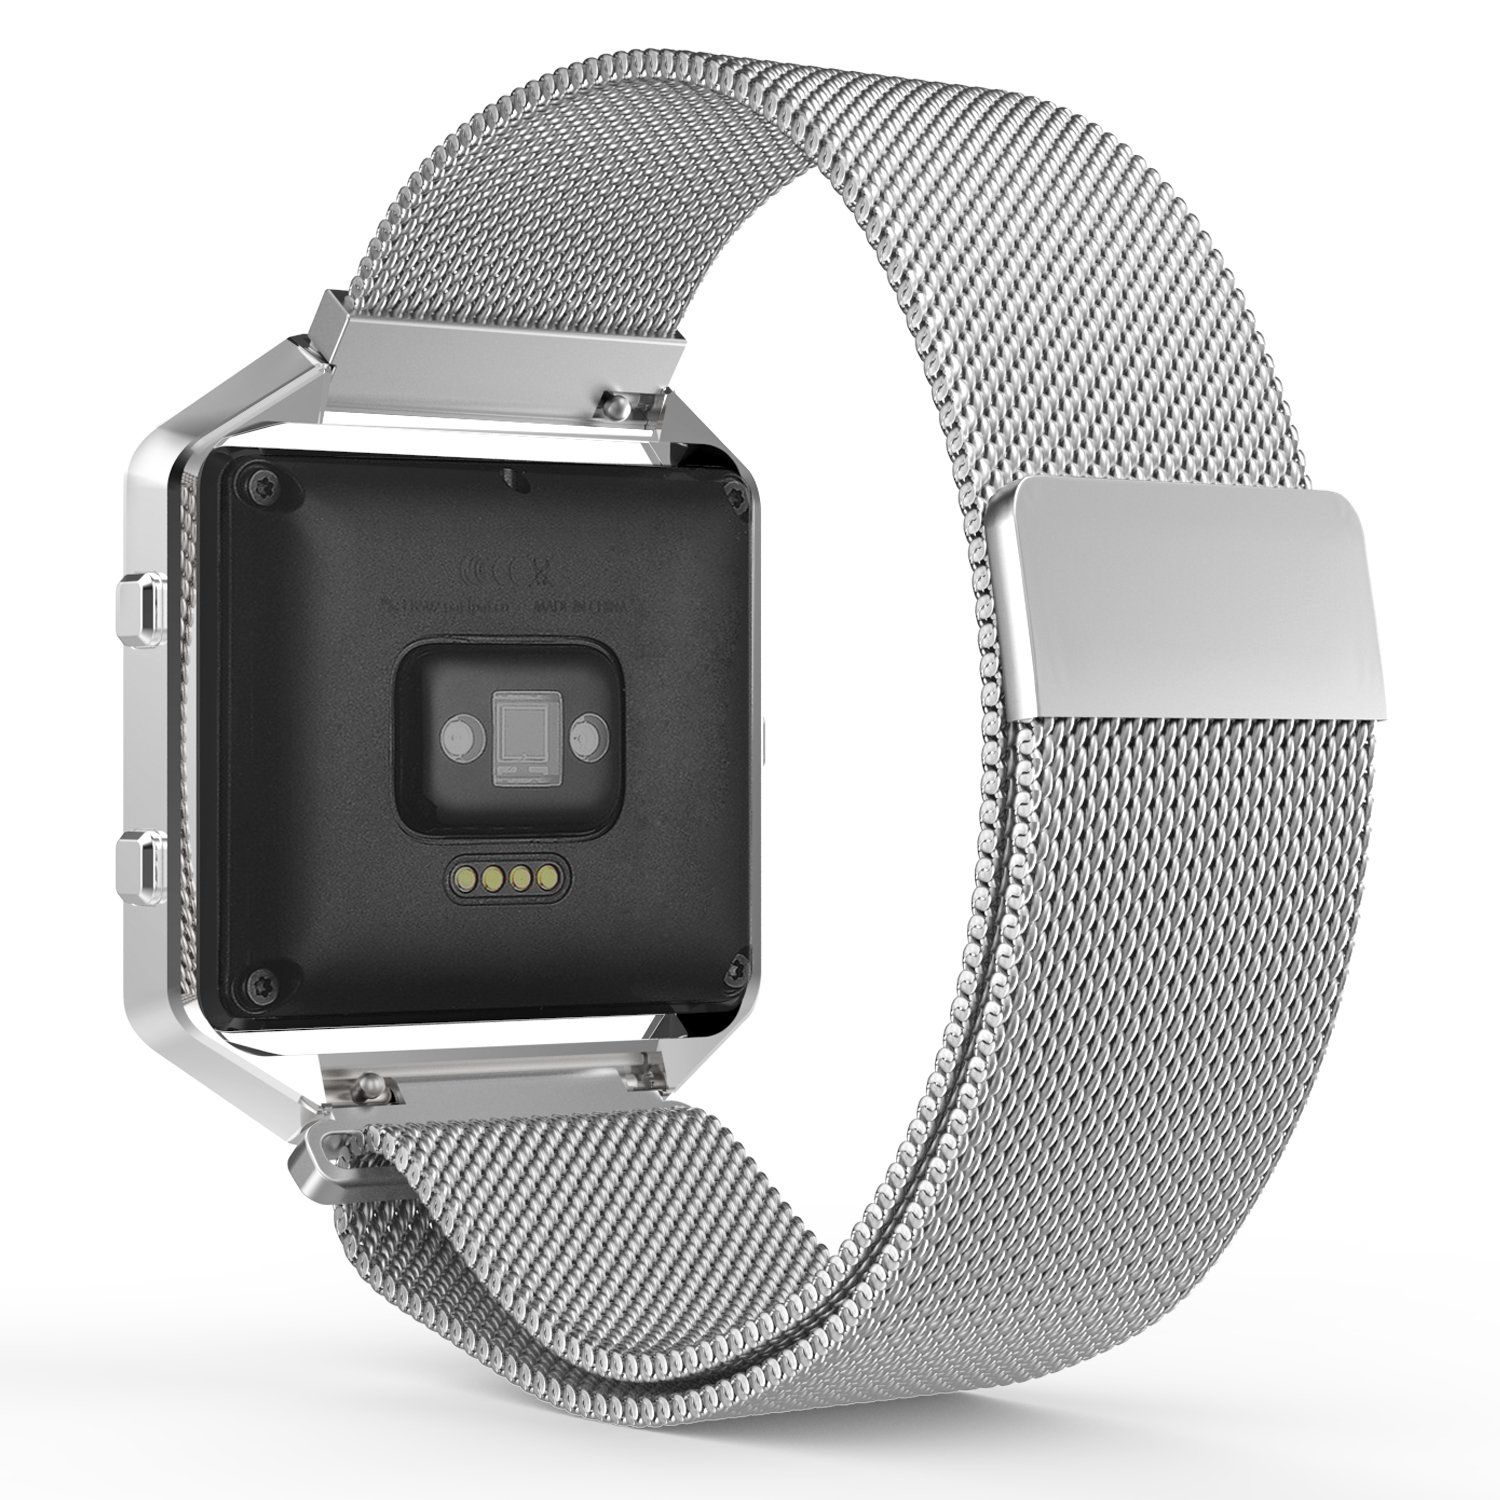 MoKo Fitbit Blaze Band, Milanese Loop Mesh Stainless Steel Bracelet Watch Strap for Fitbit Blaze Smart Fitness Watch with Unique Magnet Lock, No Buckle Needed, Frame NOT Included - SILVER